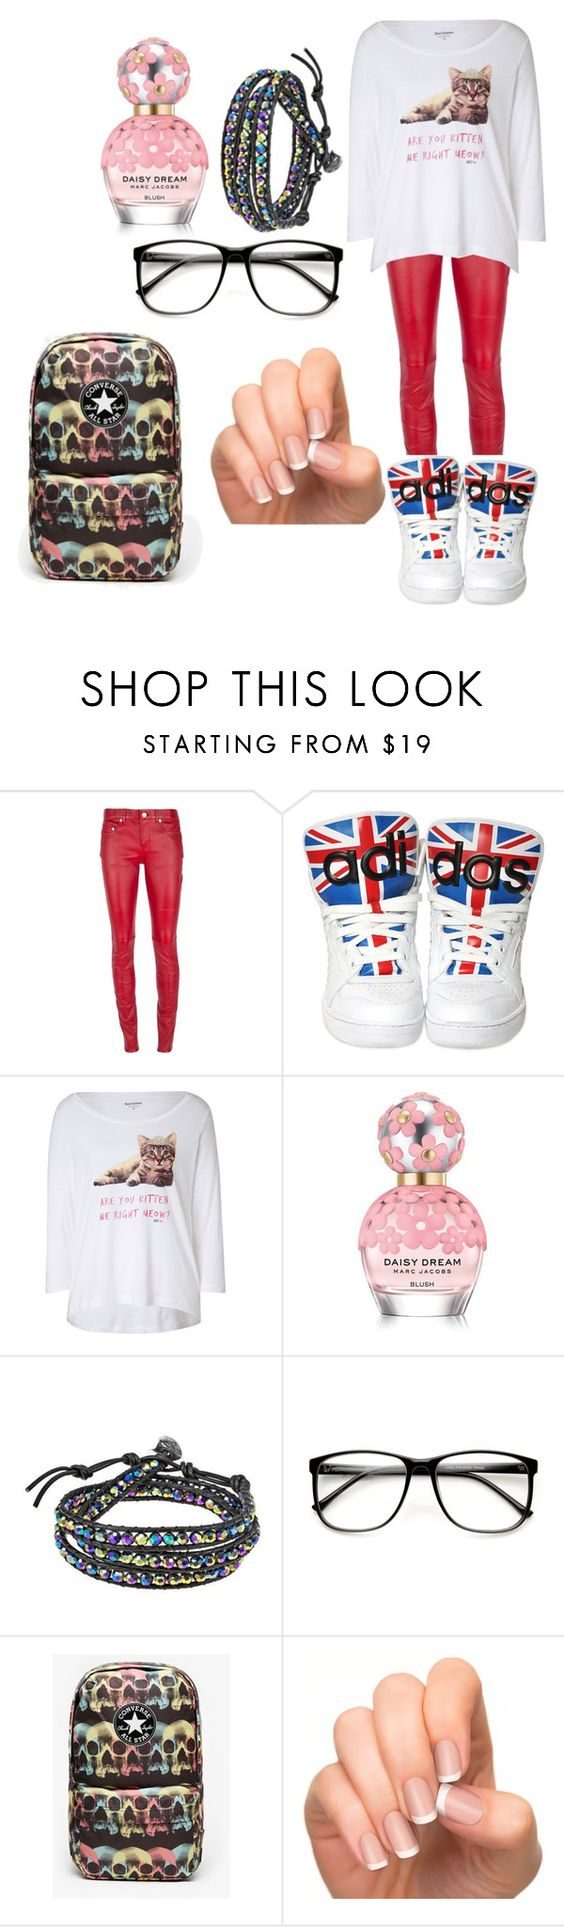 """"""""""" by ivana-milovanovic ❤ liked on Polyvore featuring Yves Saint Laurent, adidas, Juicy Couture, Marc Jacobs, AeraVida and Converse"""